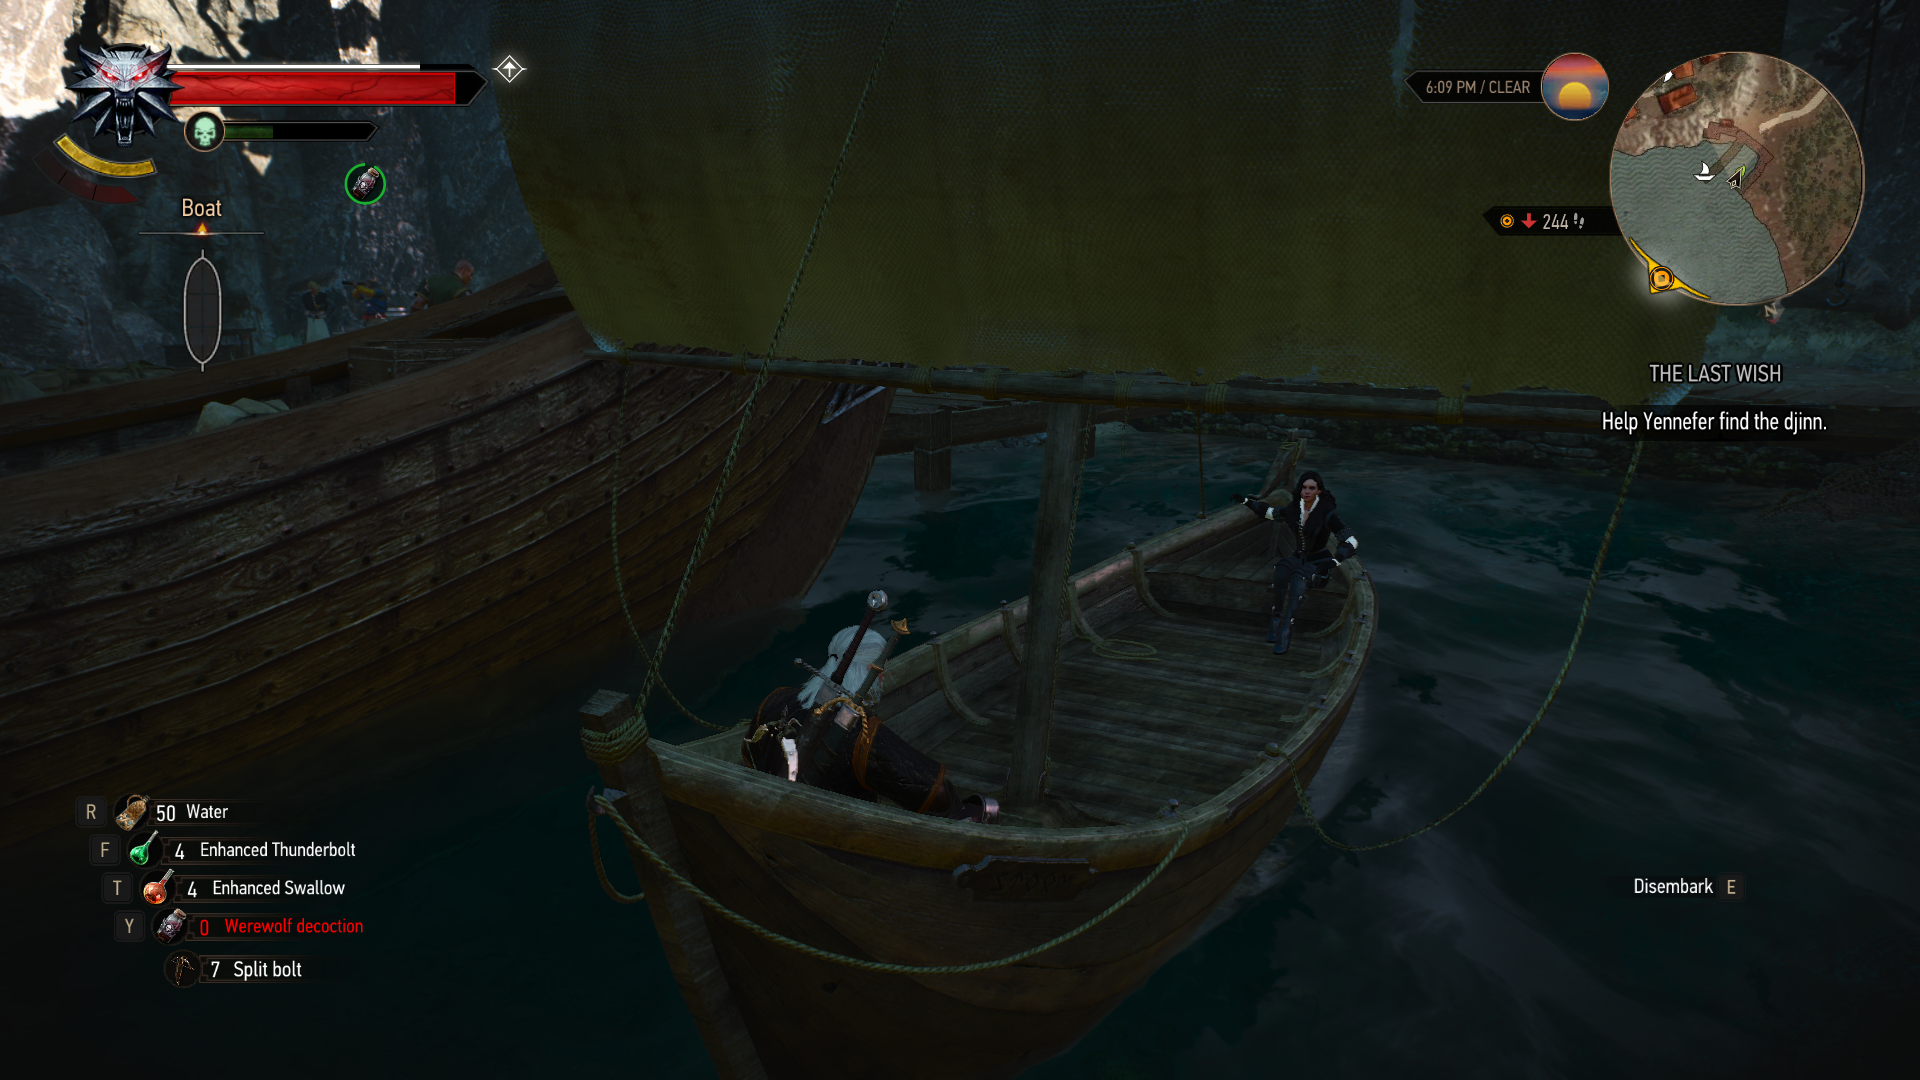 on boat with yennefer